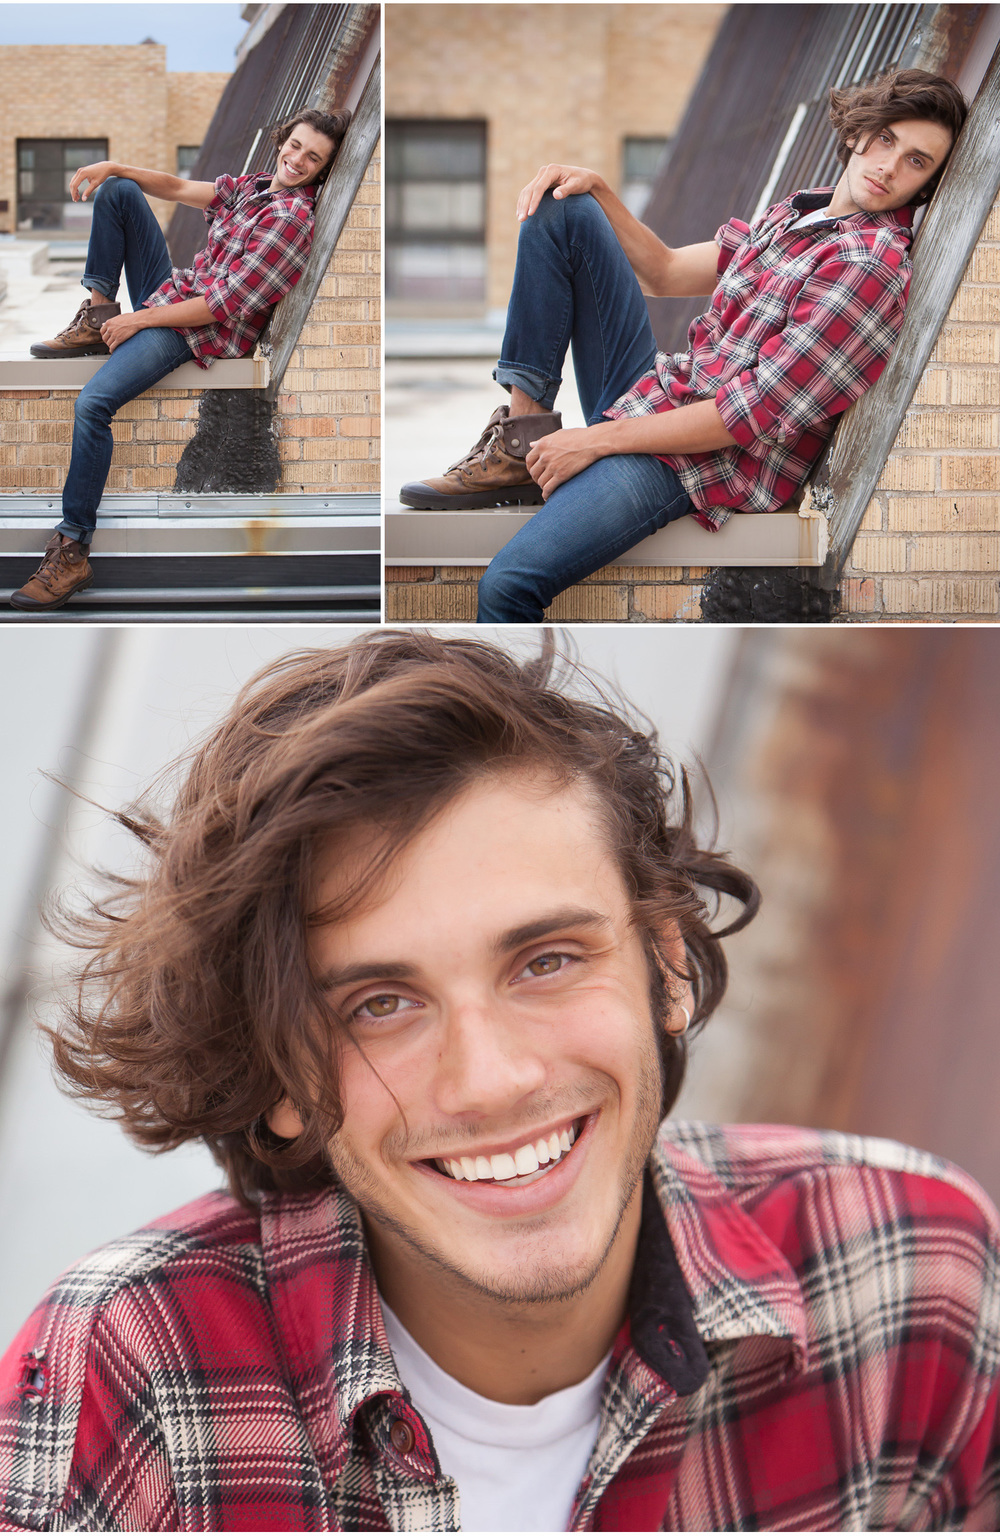 Male Talent Headshots and Portfolio Photos on urban rooftop, by Denver Photographer Jennifer Koskinen, Merritt Portrait Studio.